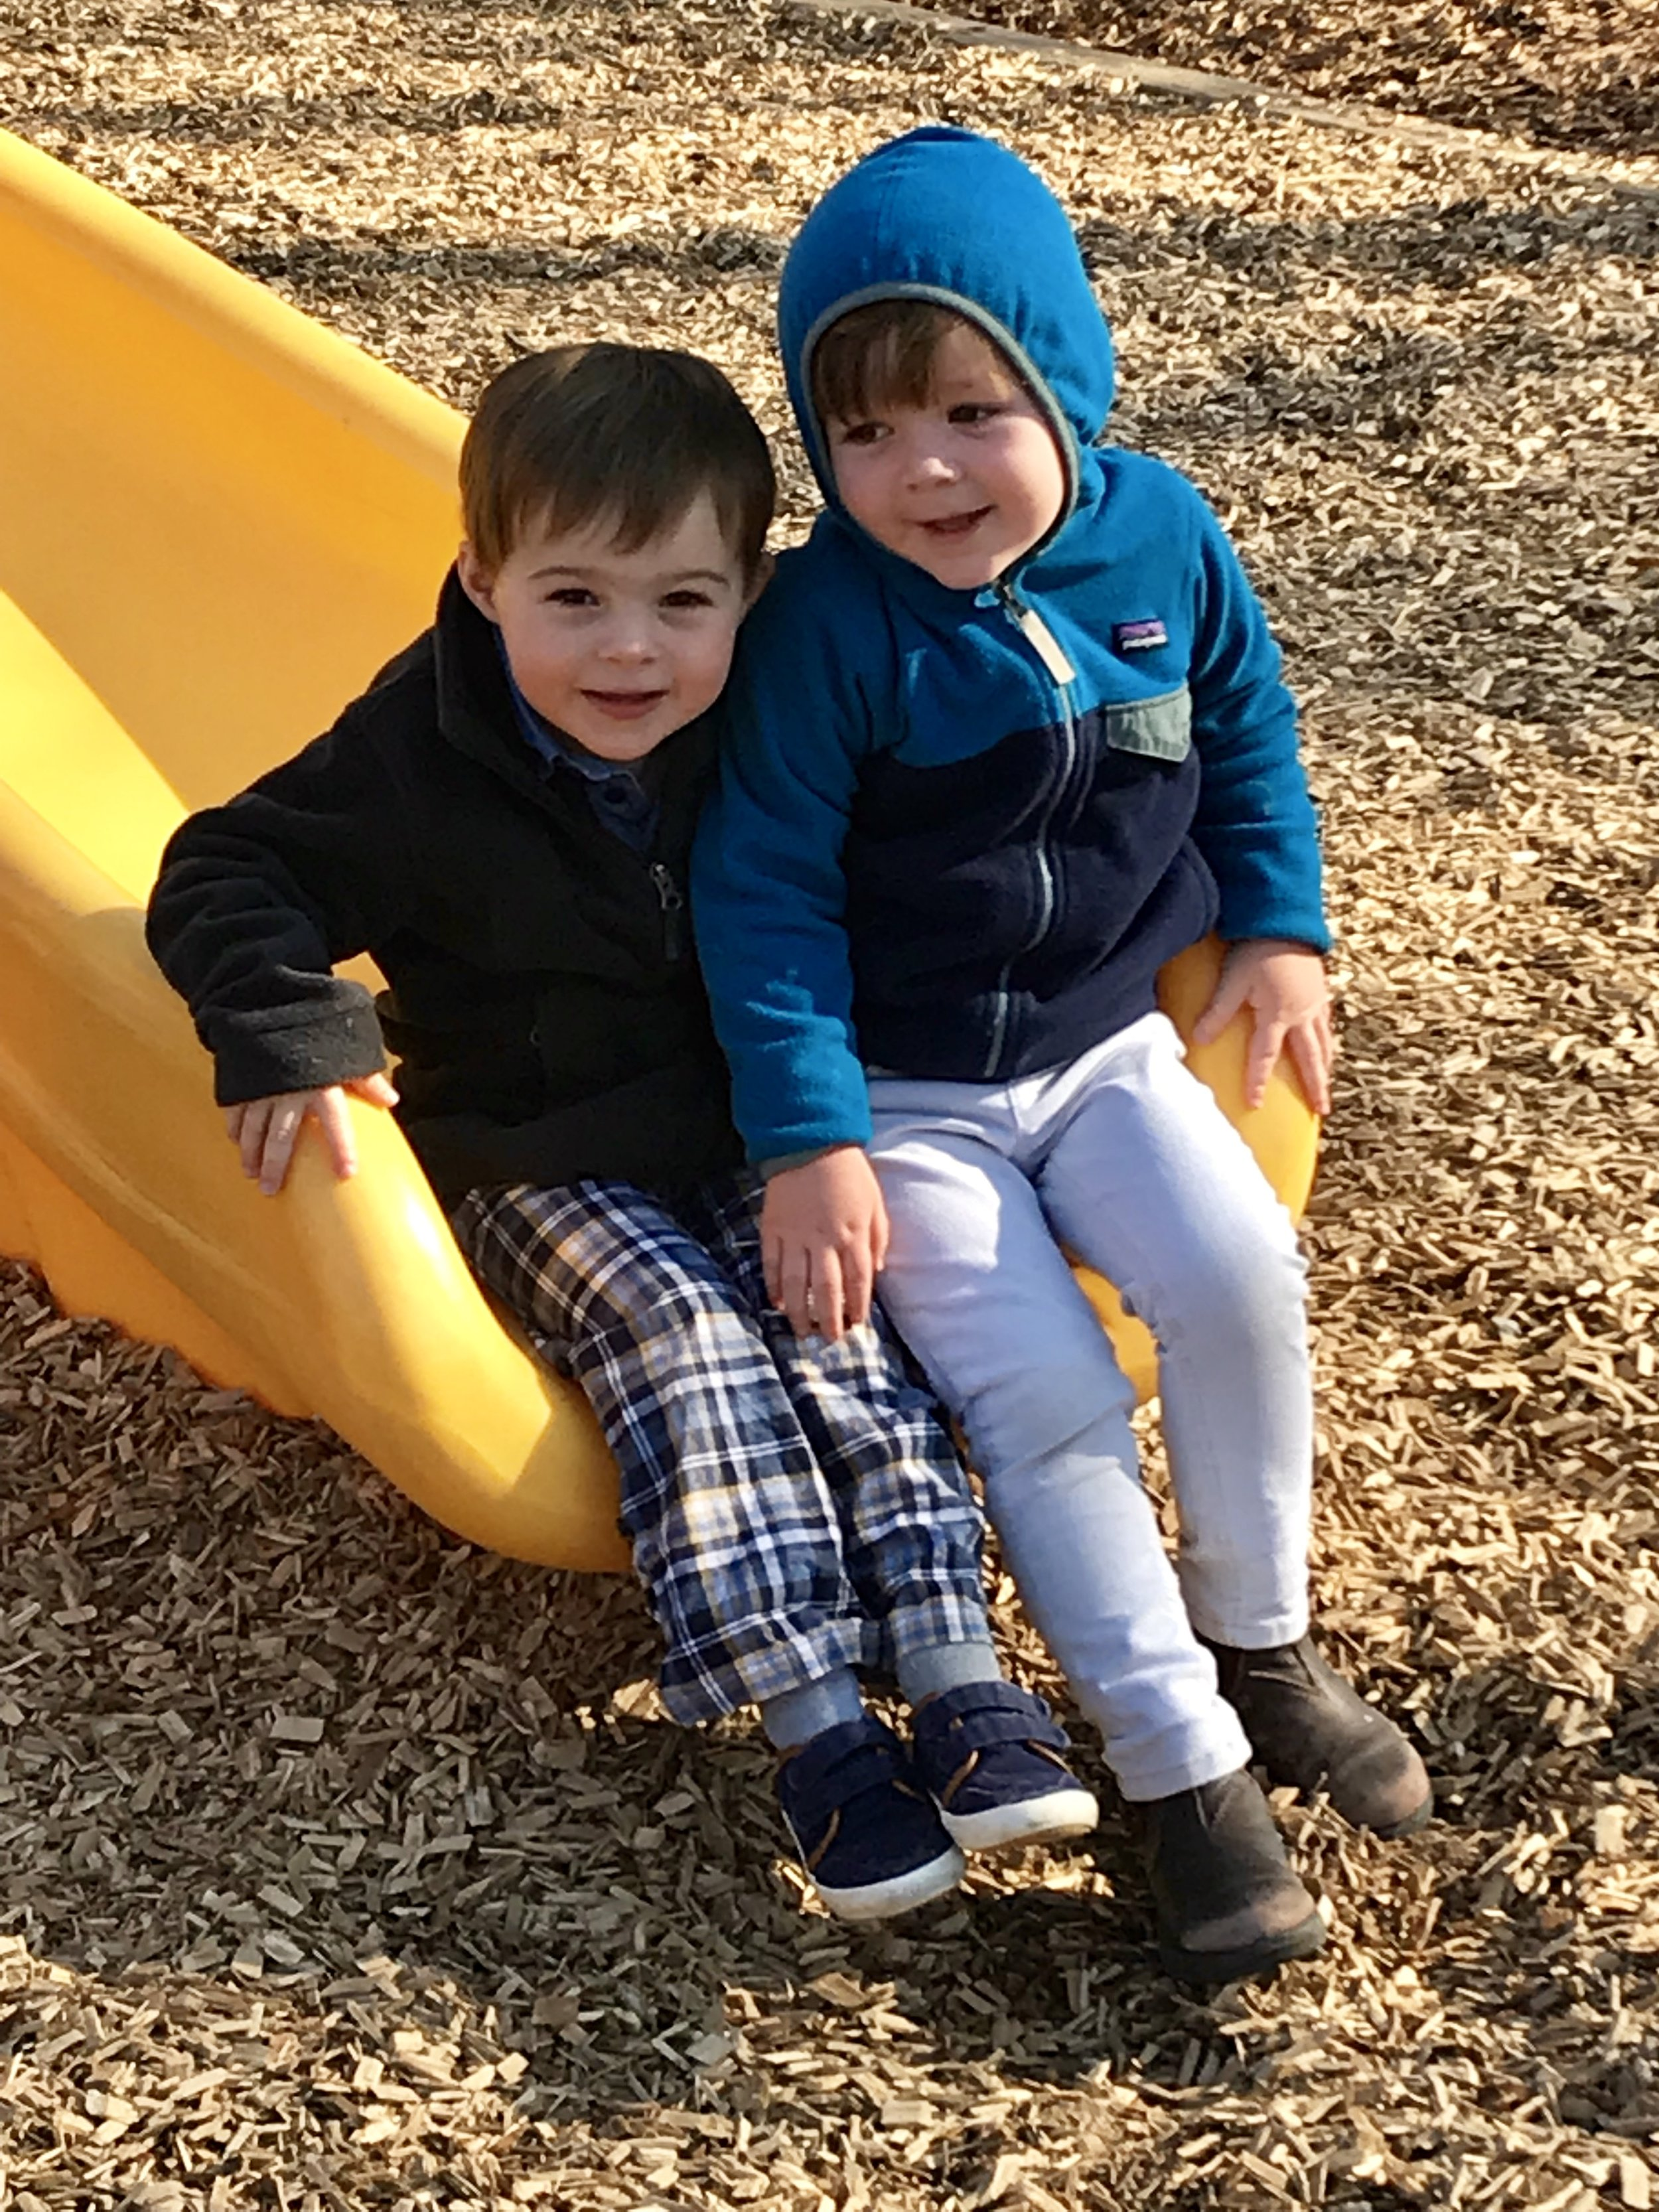 """We made our way to the big playground this week - walking on the """"yellow line"""" as a group - your kids did an amazing job navigating as a group. Our reward was a fabulous time playing """"like the big kids""""!."""